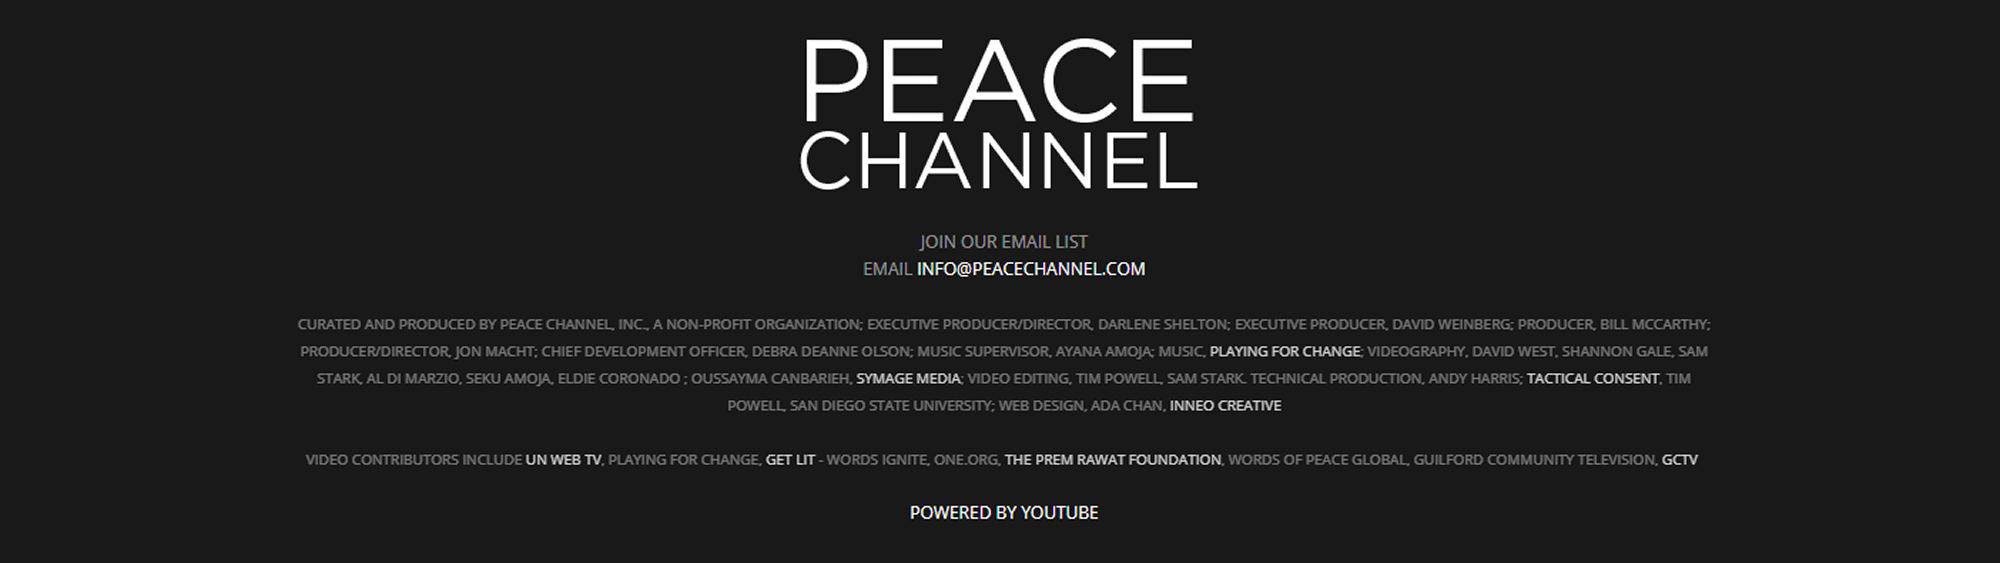 peacechannel.com